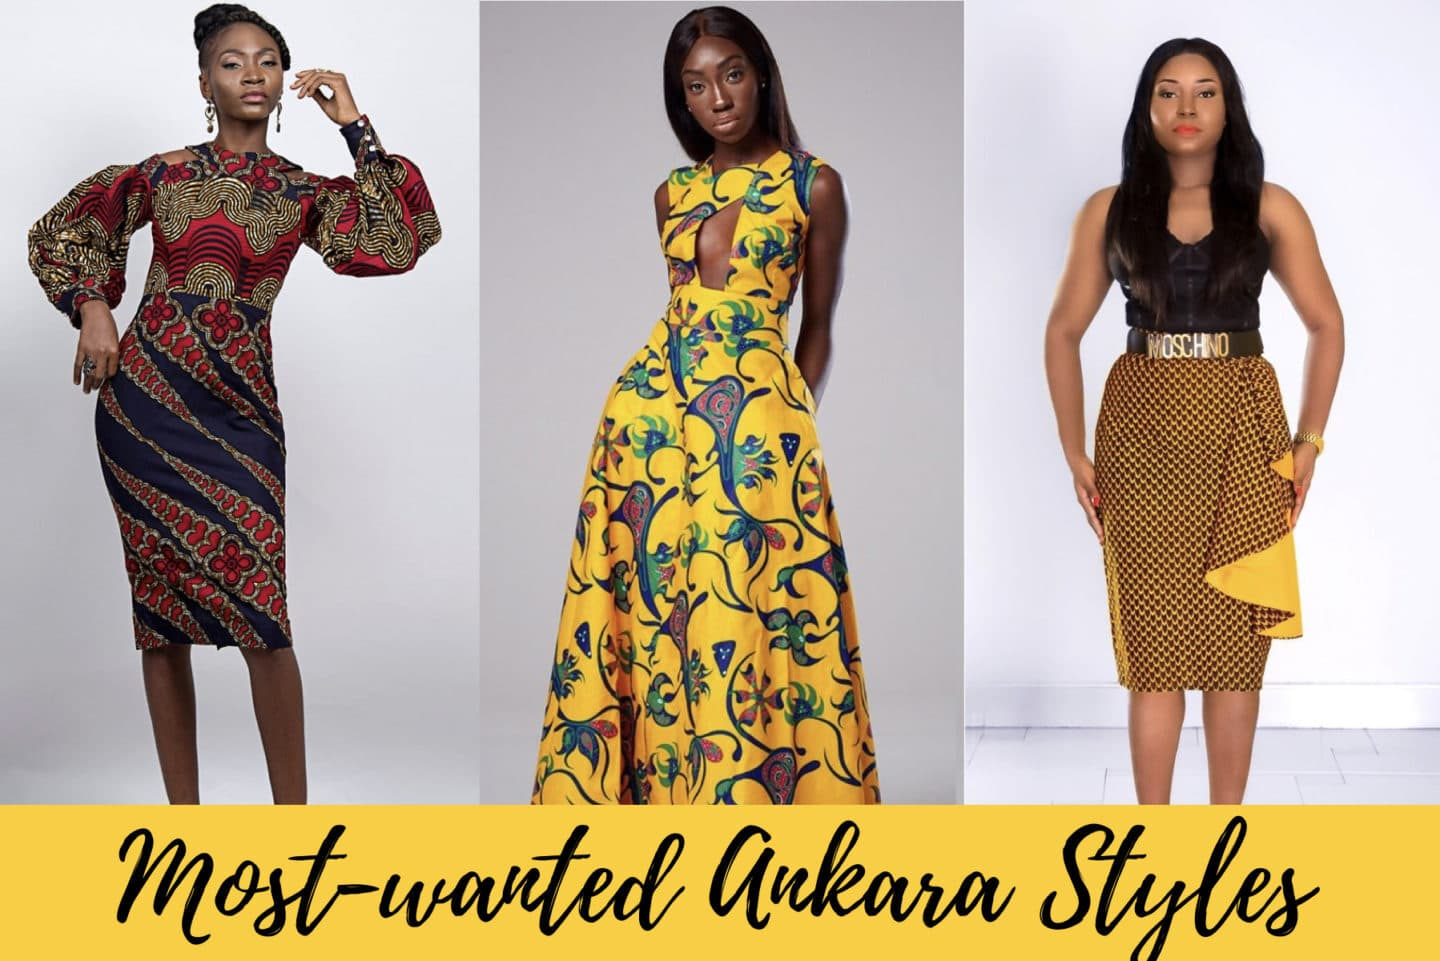 A roundup of the most stylish ankara styles to rock this year. Includes dresses, skirts, African print blouses and ankara rompers.